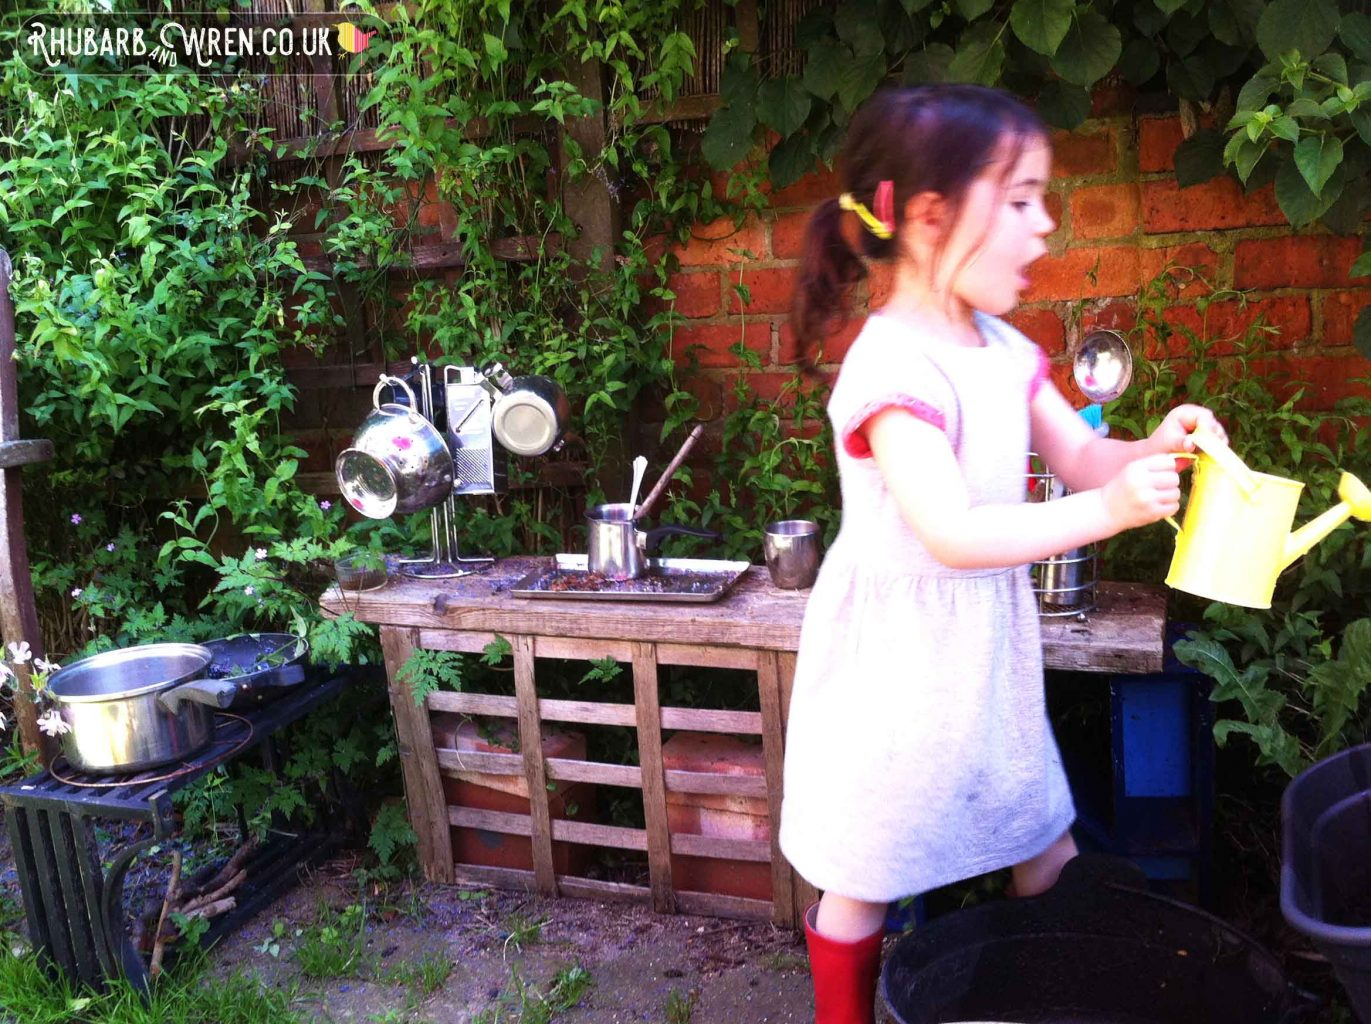 girl playing in mud kitchen, holding a yellow watering can